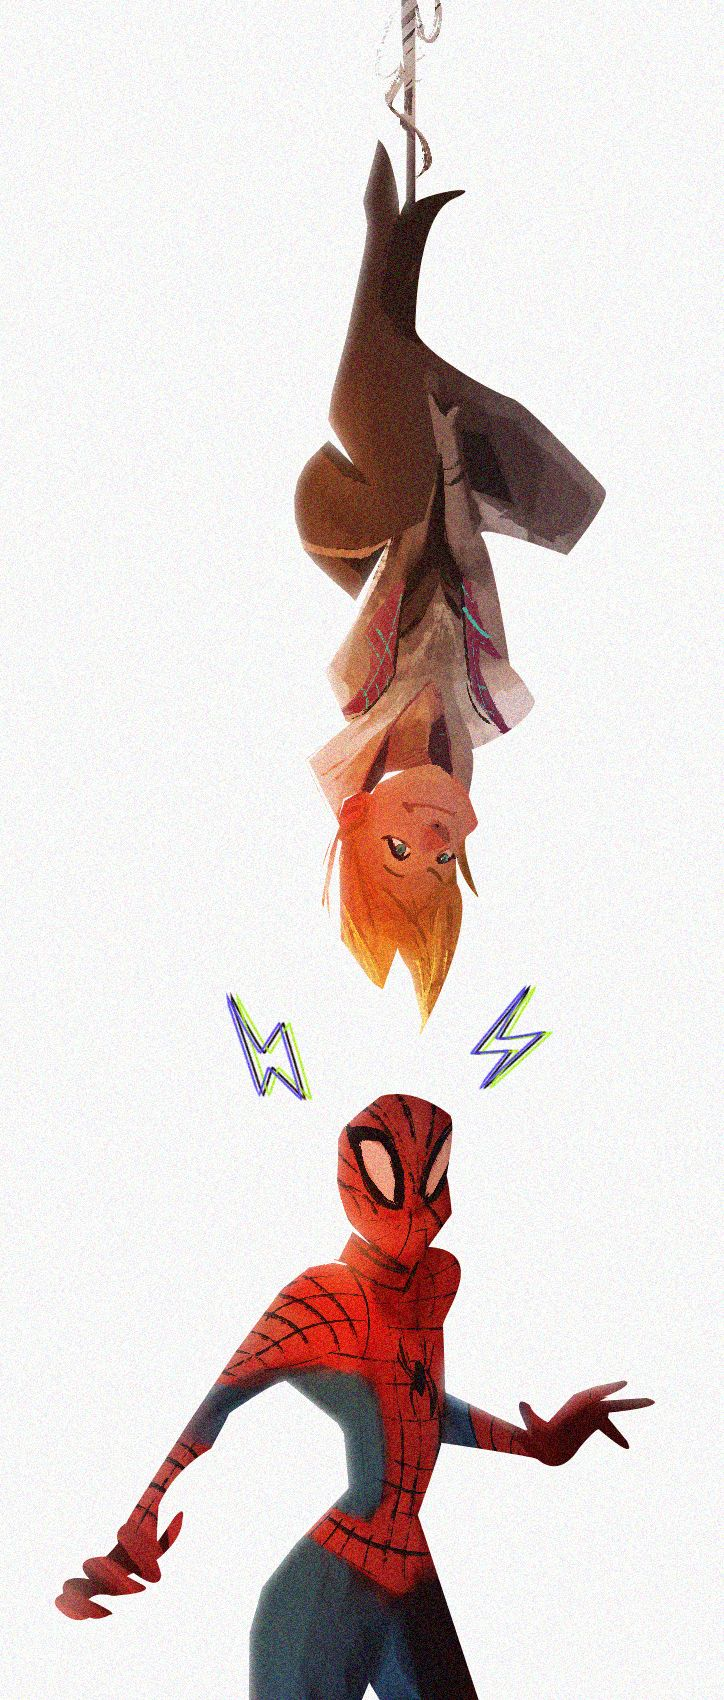 SpiderGwen, does whatever a SpiderGwen does